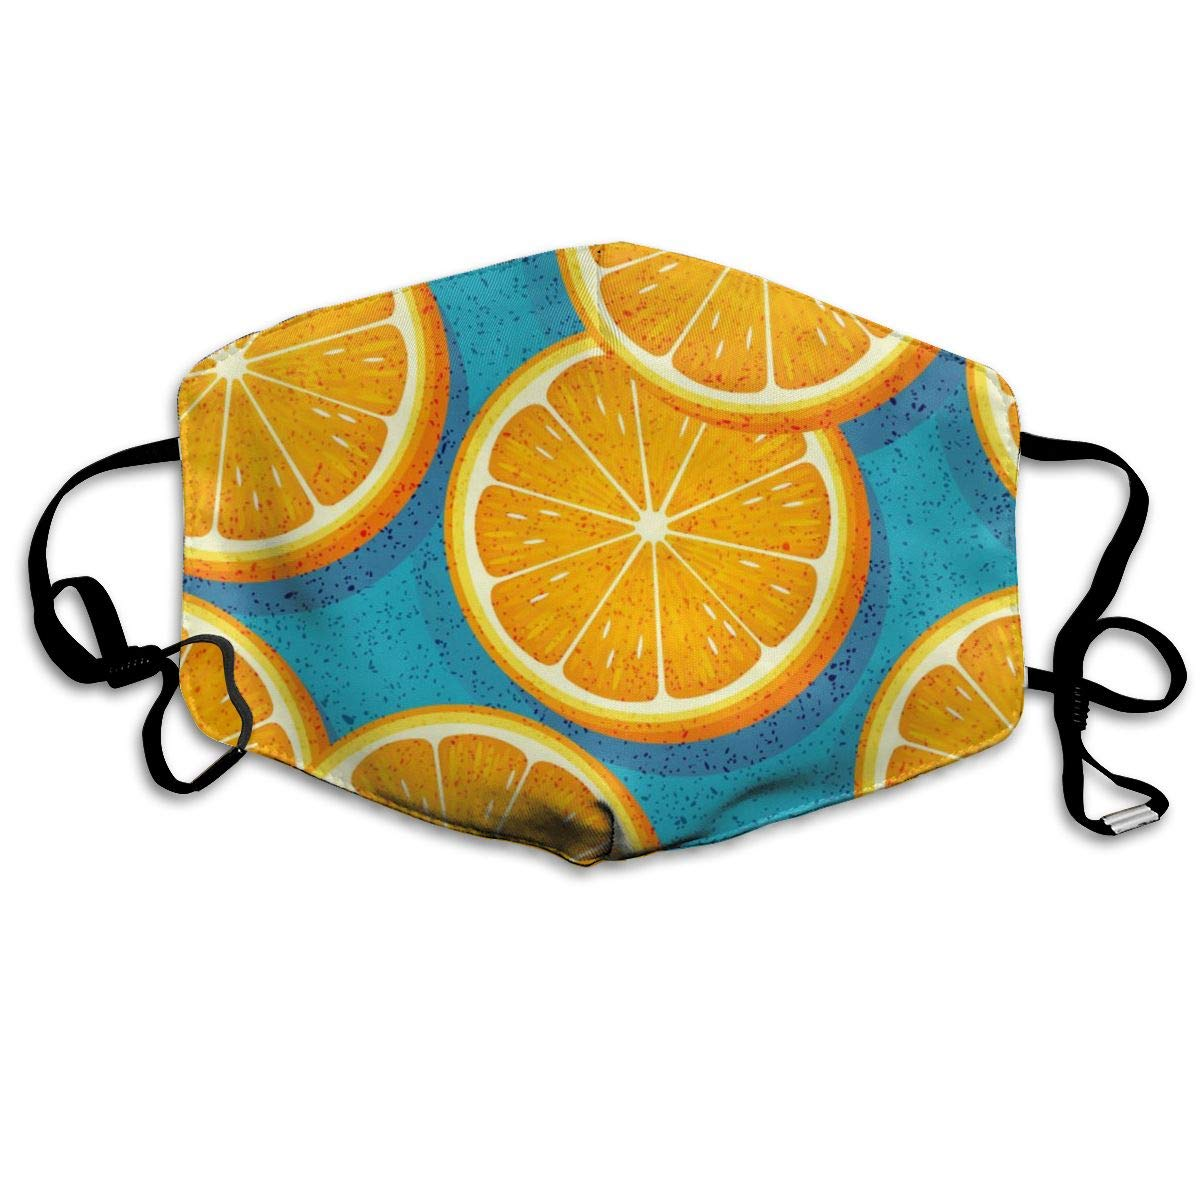 Mouth Mask Fresh Orange Fruit Print Masks - Breathable Adjustable Windproof Mouth-Muffle, Camping Running For Women And Men